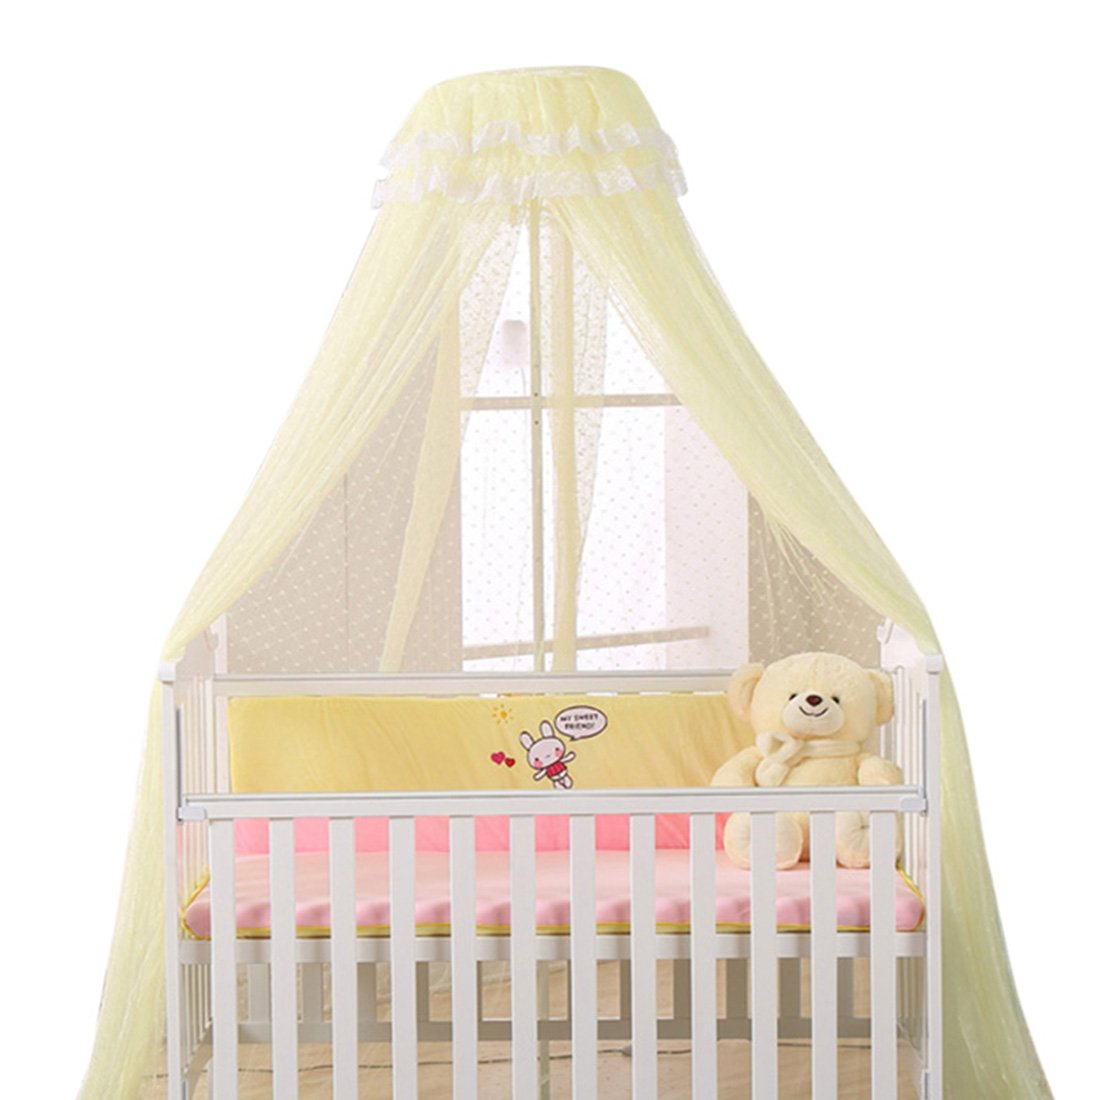 YUENA CARE Baby Bed Dome Mosquito Netting Hanging Bed Net Insect Protection Cover Yellow(net)